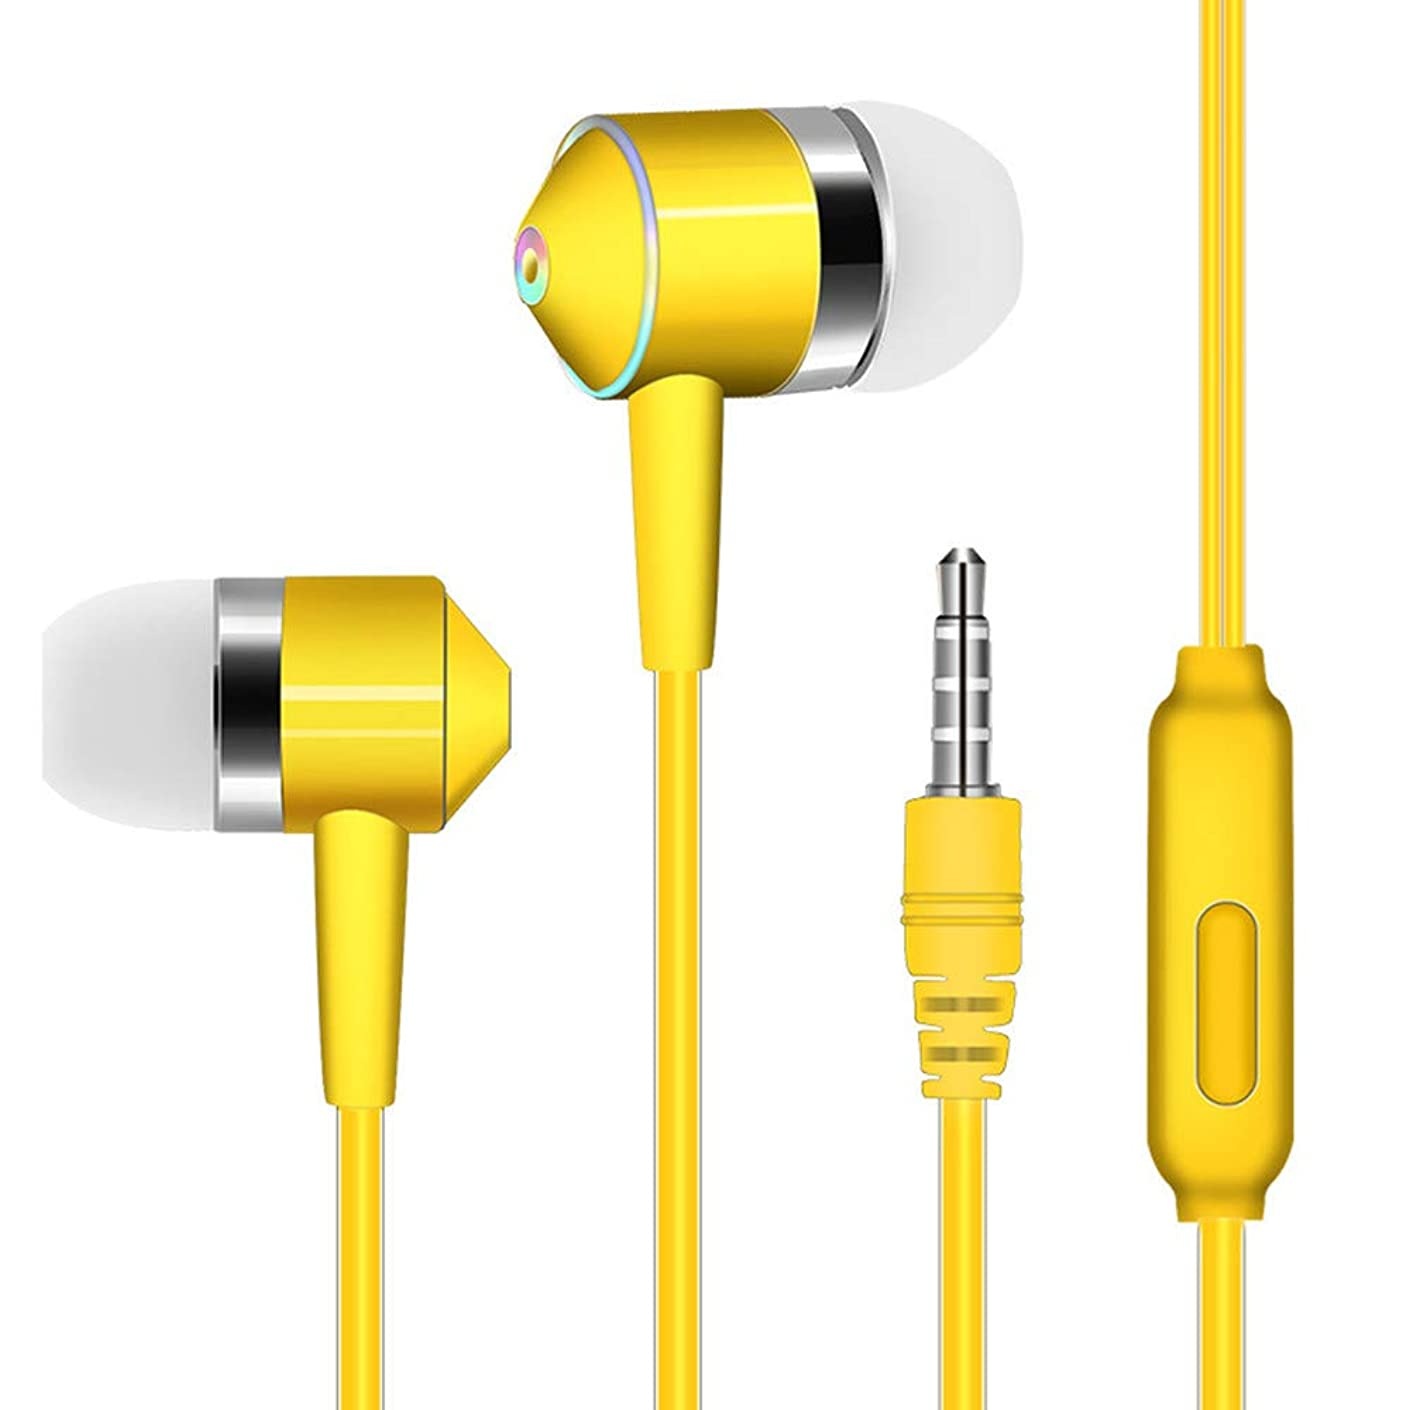 3.5mm Wired Earphone, Stheanoo Wire Piston Dual-Driver Headphone In-ear Stereo Headset Sport Colorful Earphone With Mic for Cell Phone Computer (Yellow)